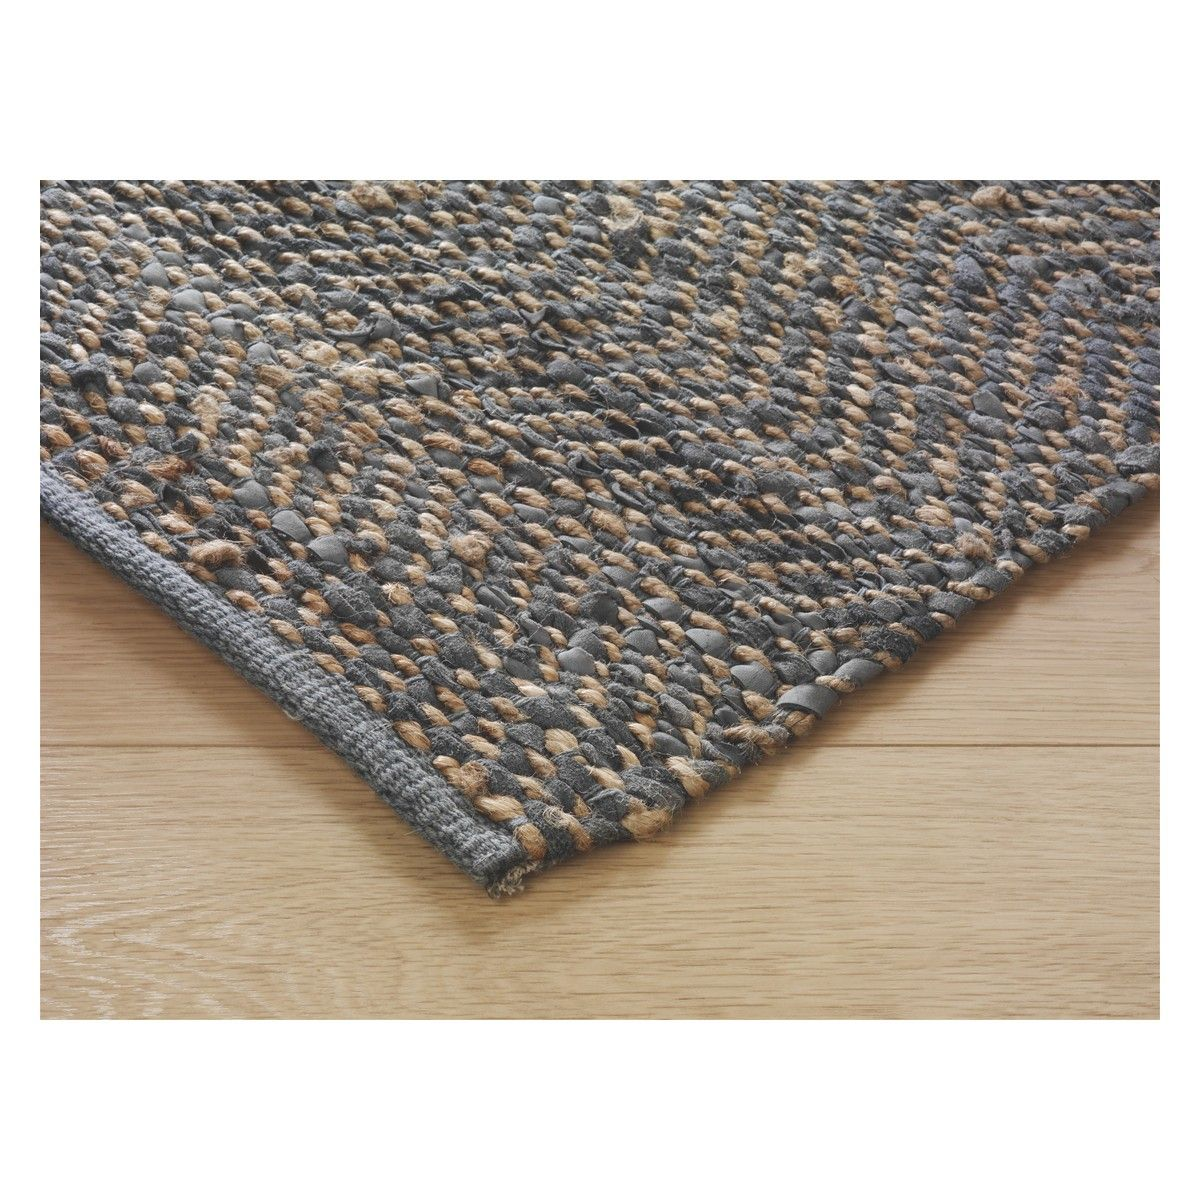 Hurley Large Grey Leather And Jute Rug 170 X 240cm Jute Rug Rugs Grey Leather